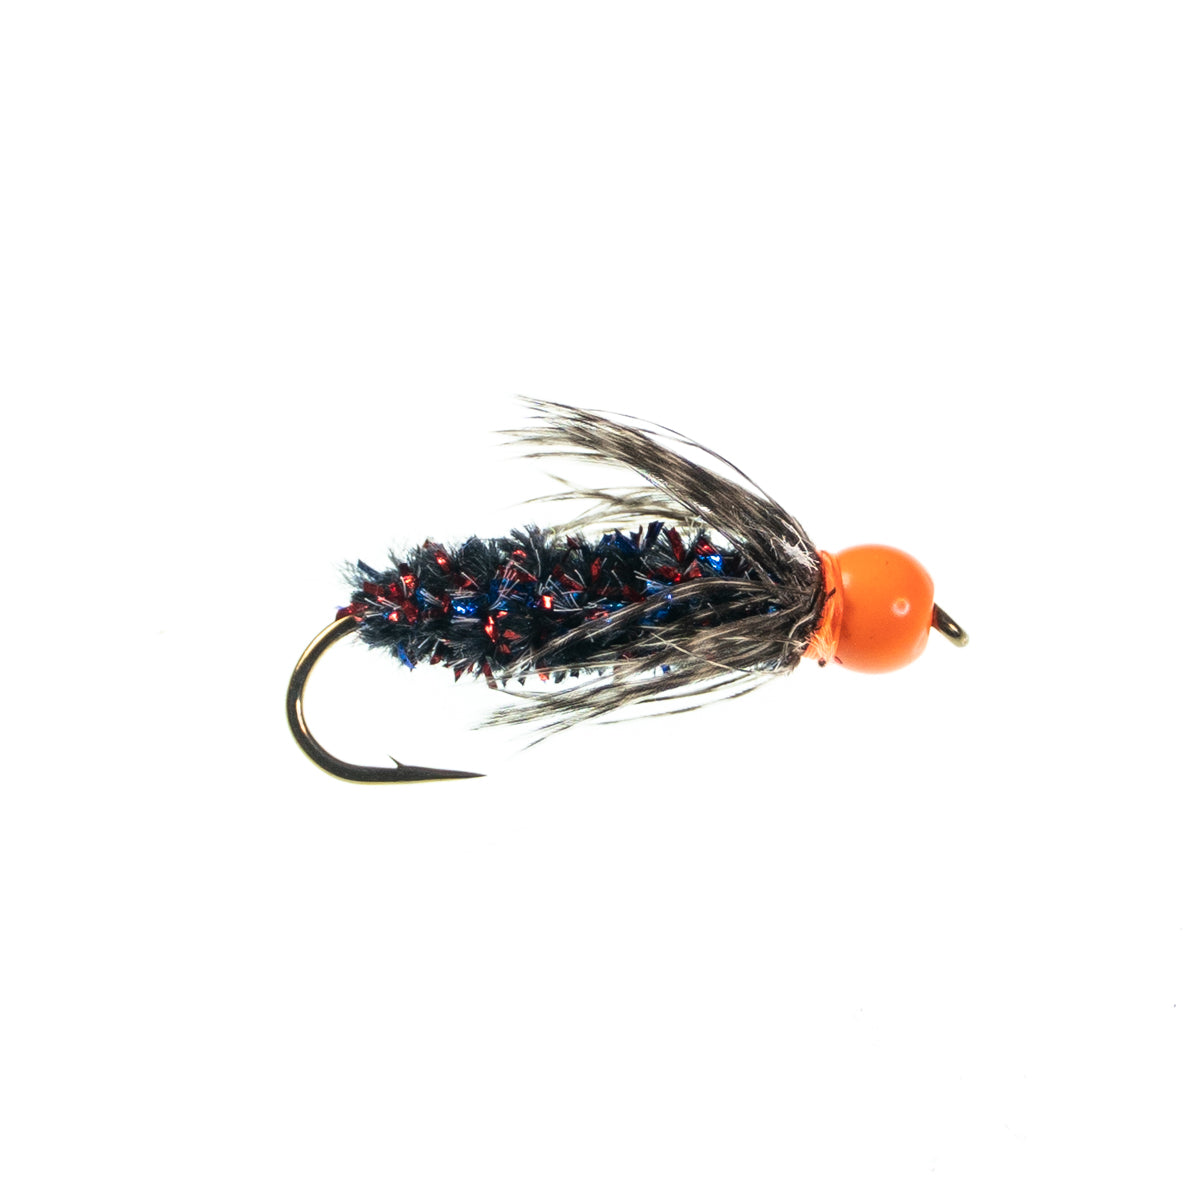 Septober Caddis